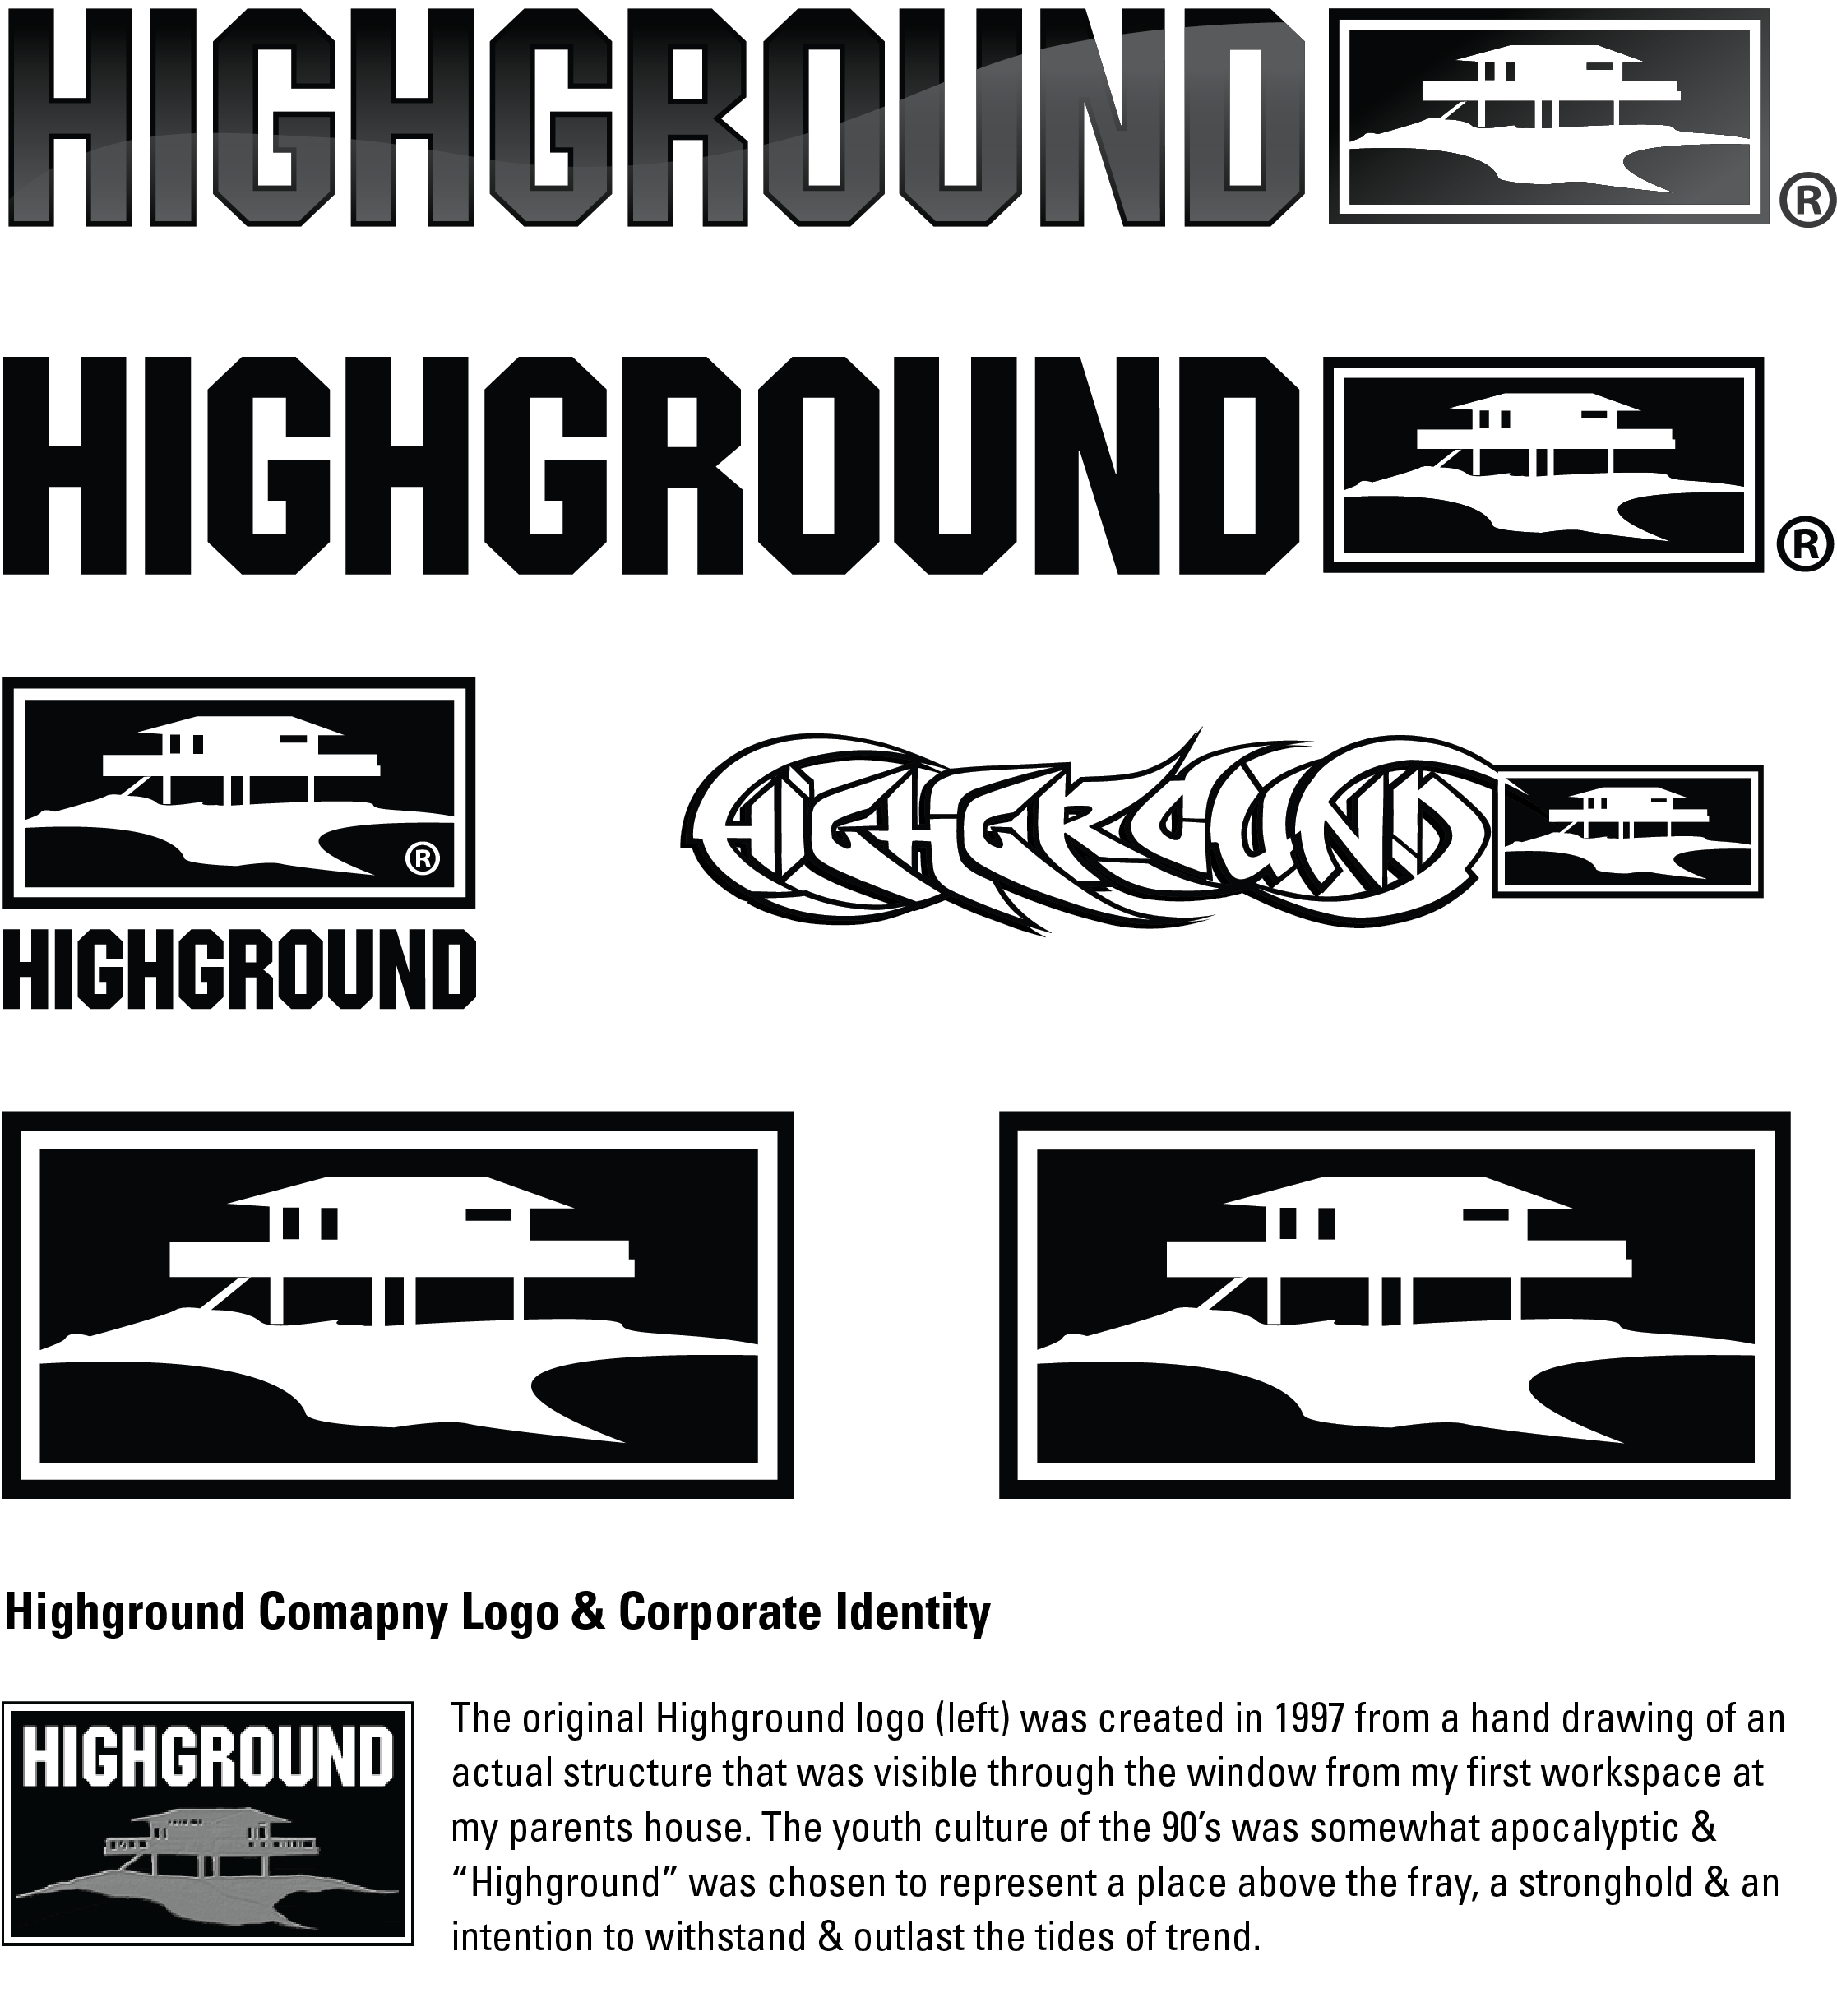 This images shows the evoluton & variations of the Highground logo from 1997 until now.